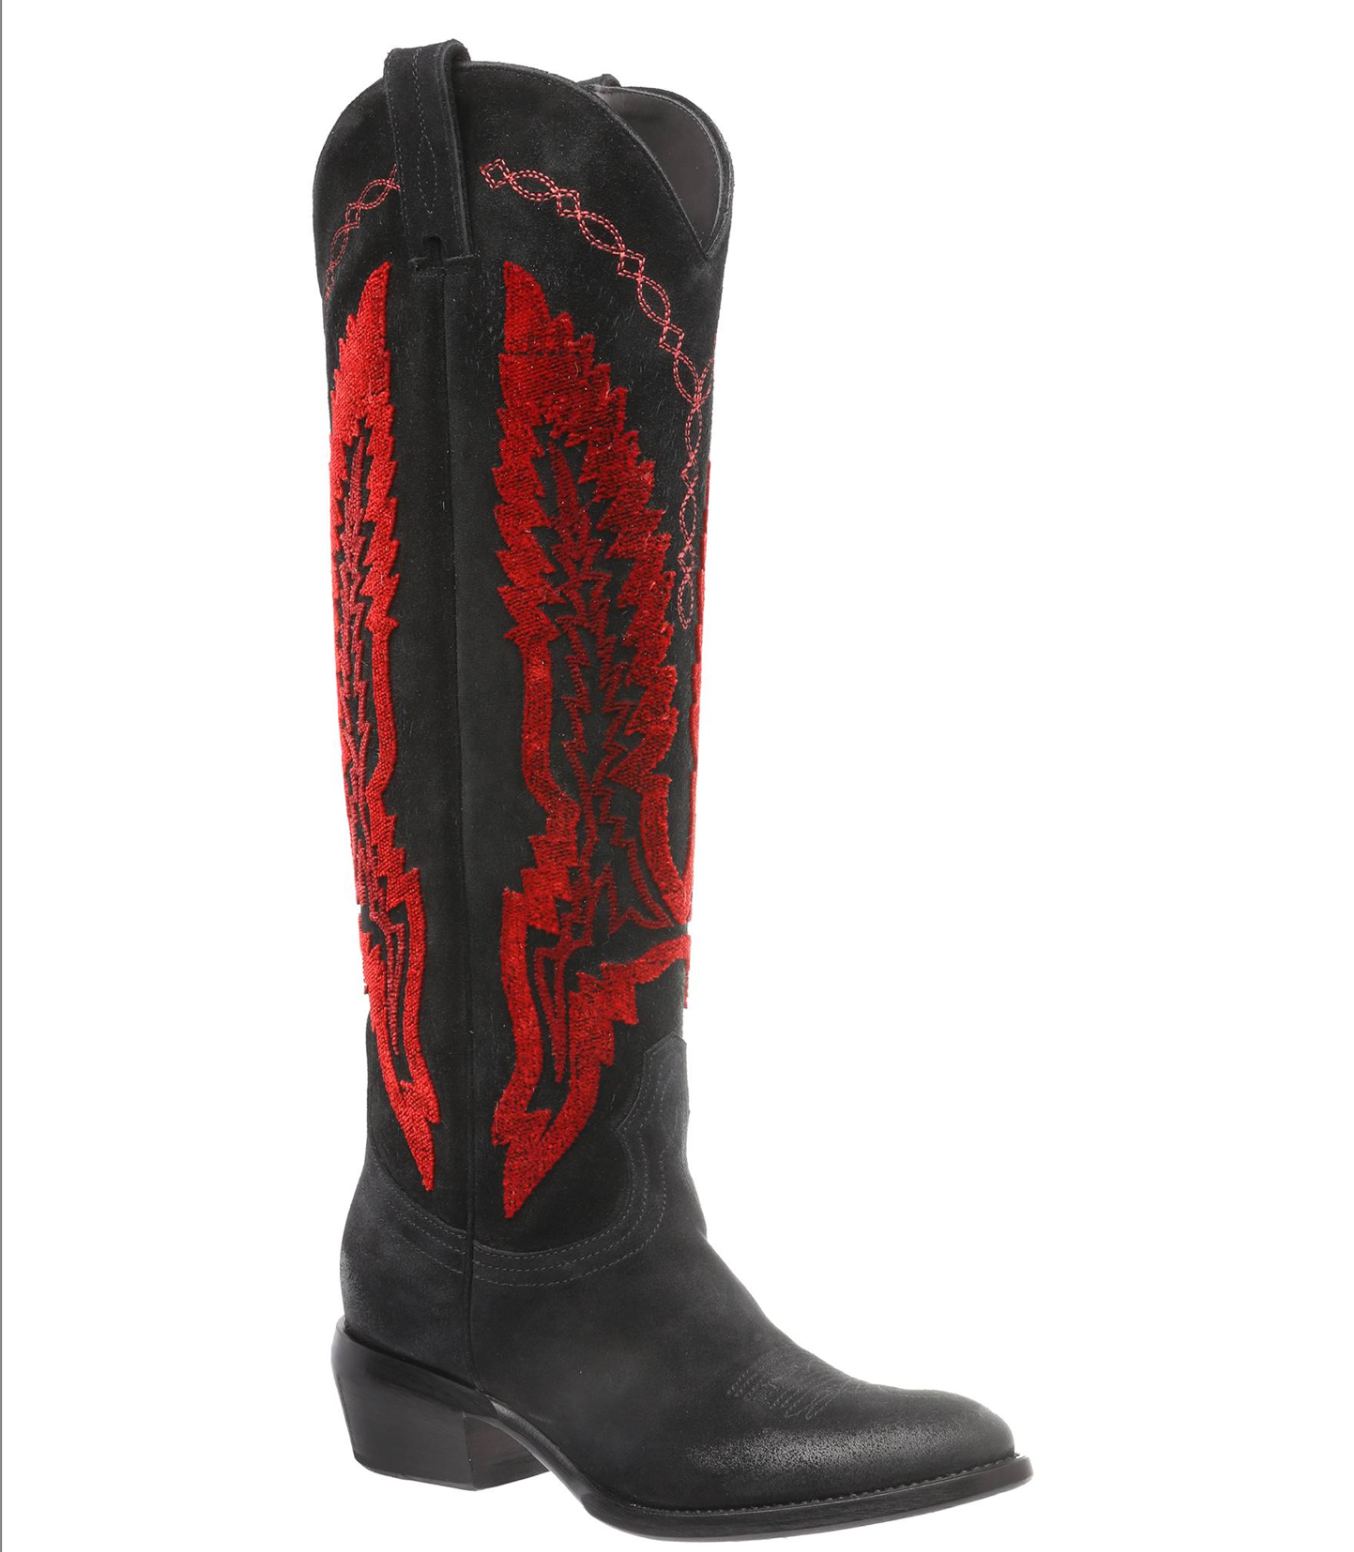 San Paolo Boots